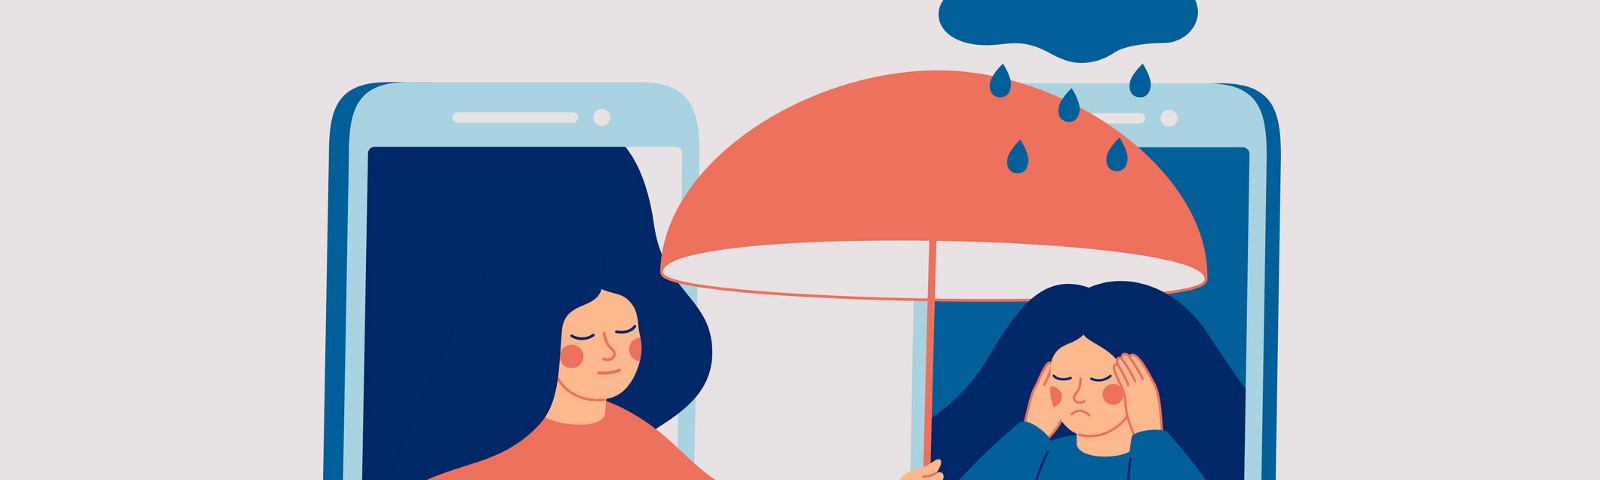 Conceptual illustration of two friends comforting each other through the phone; one holds an umbrella over the other's rain.